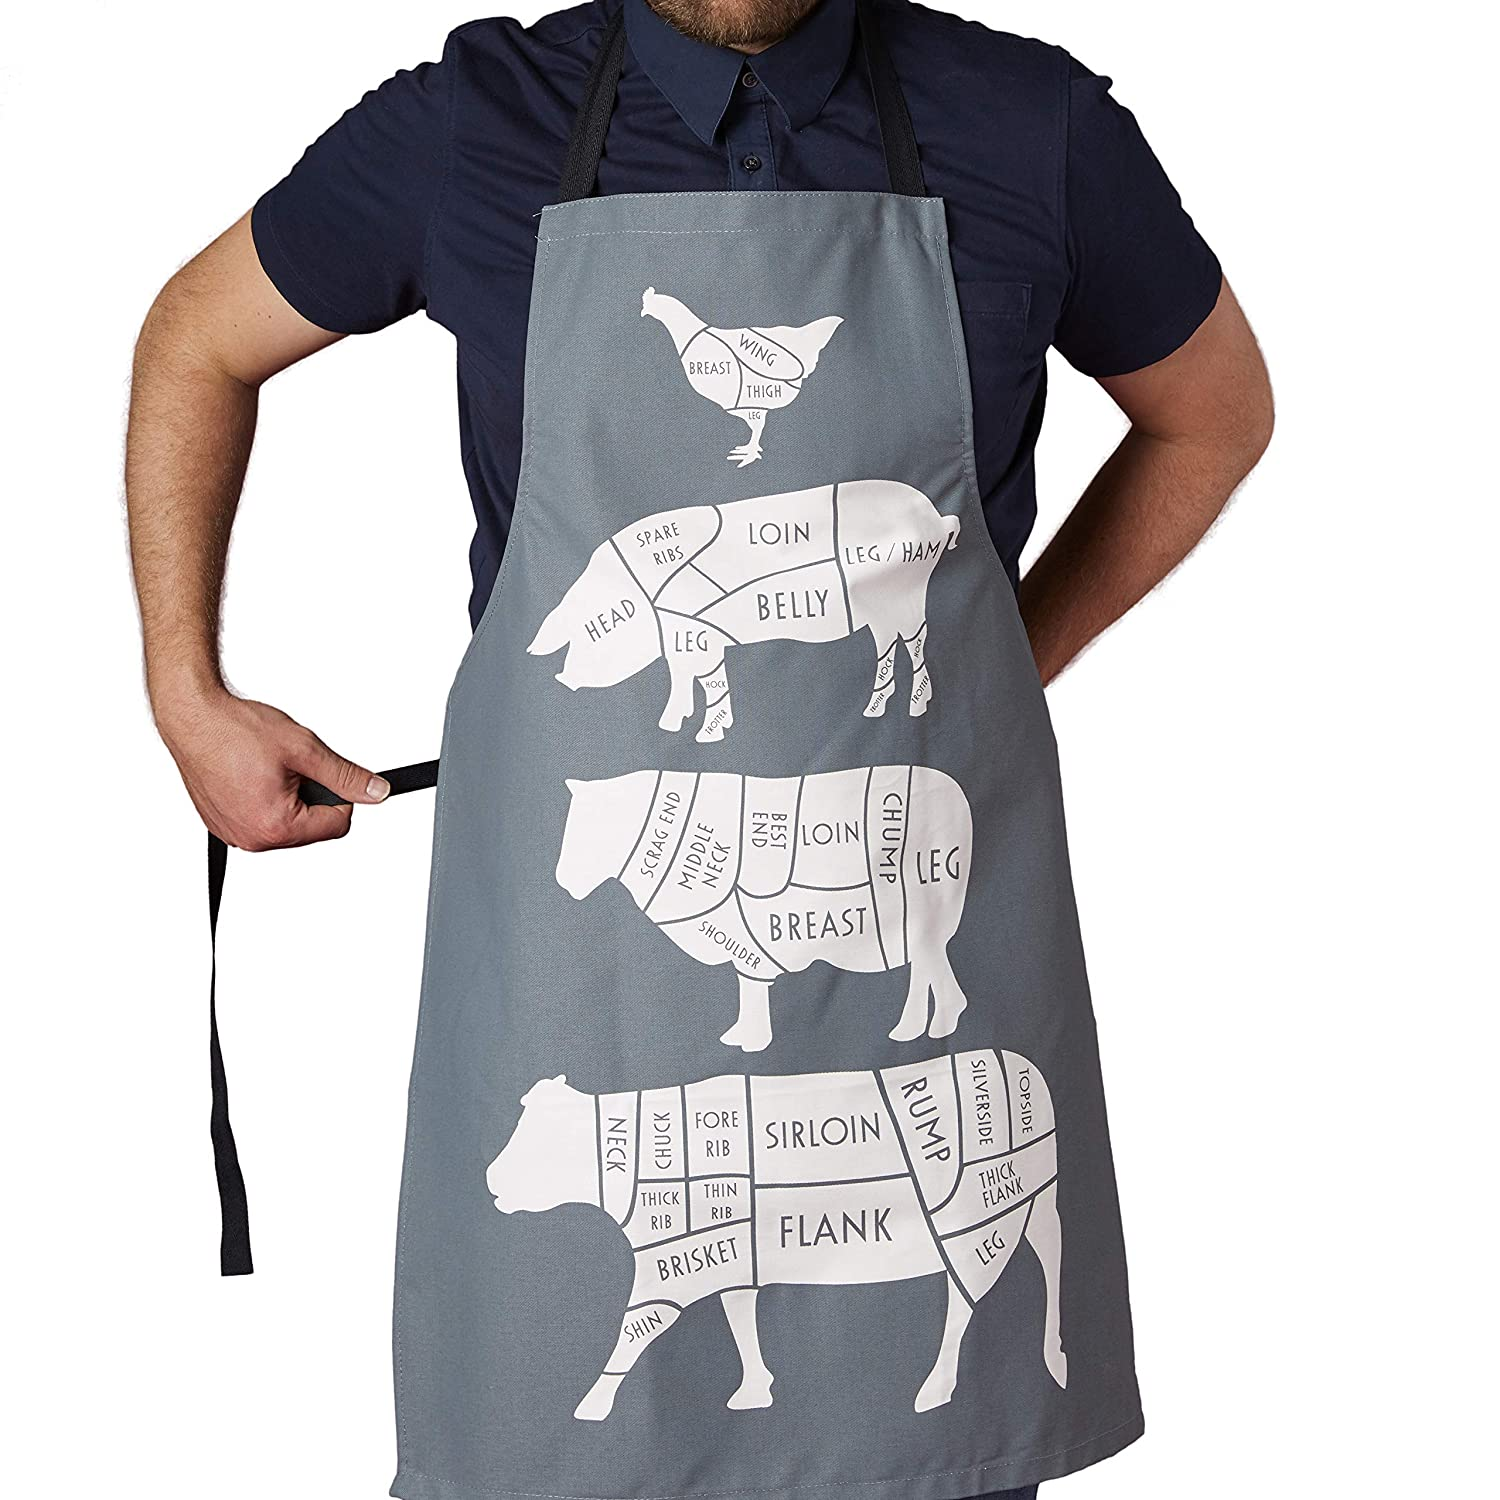 TBS Chefs Apron with Butcher cuts of meat Butcher Apron | Apron for professional use | Apron for home cooking | gift from him | gift for a foodie | cotton charcoal grey chef apron